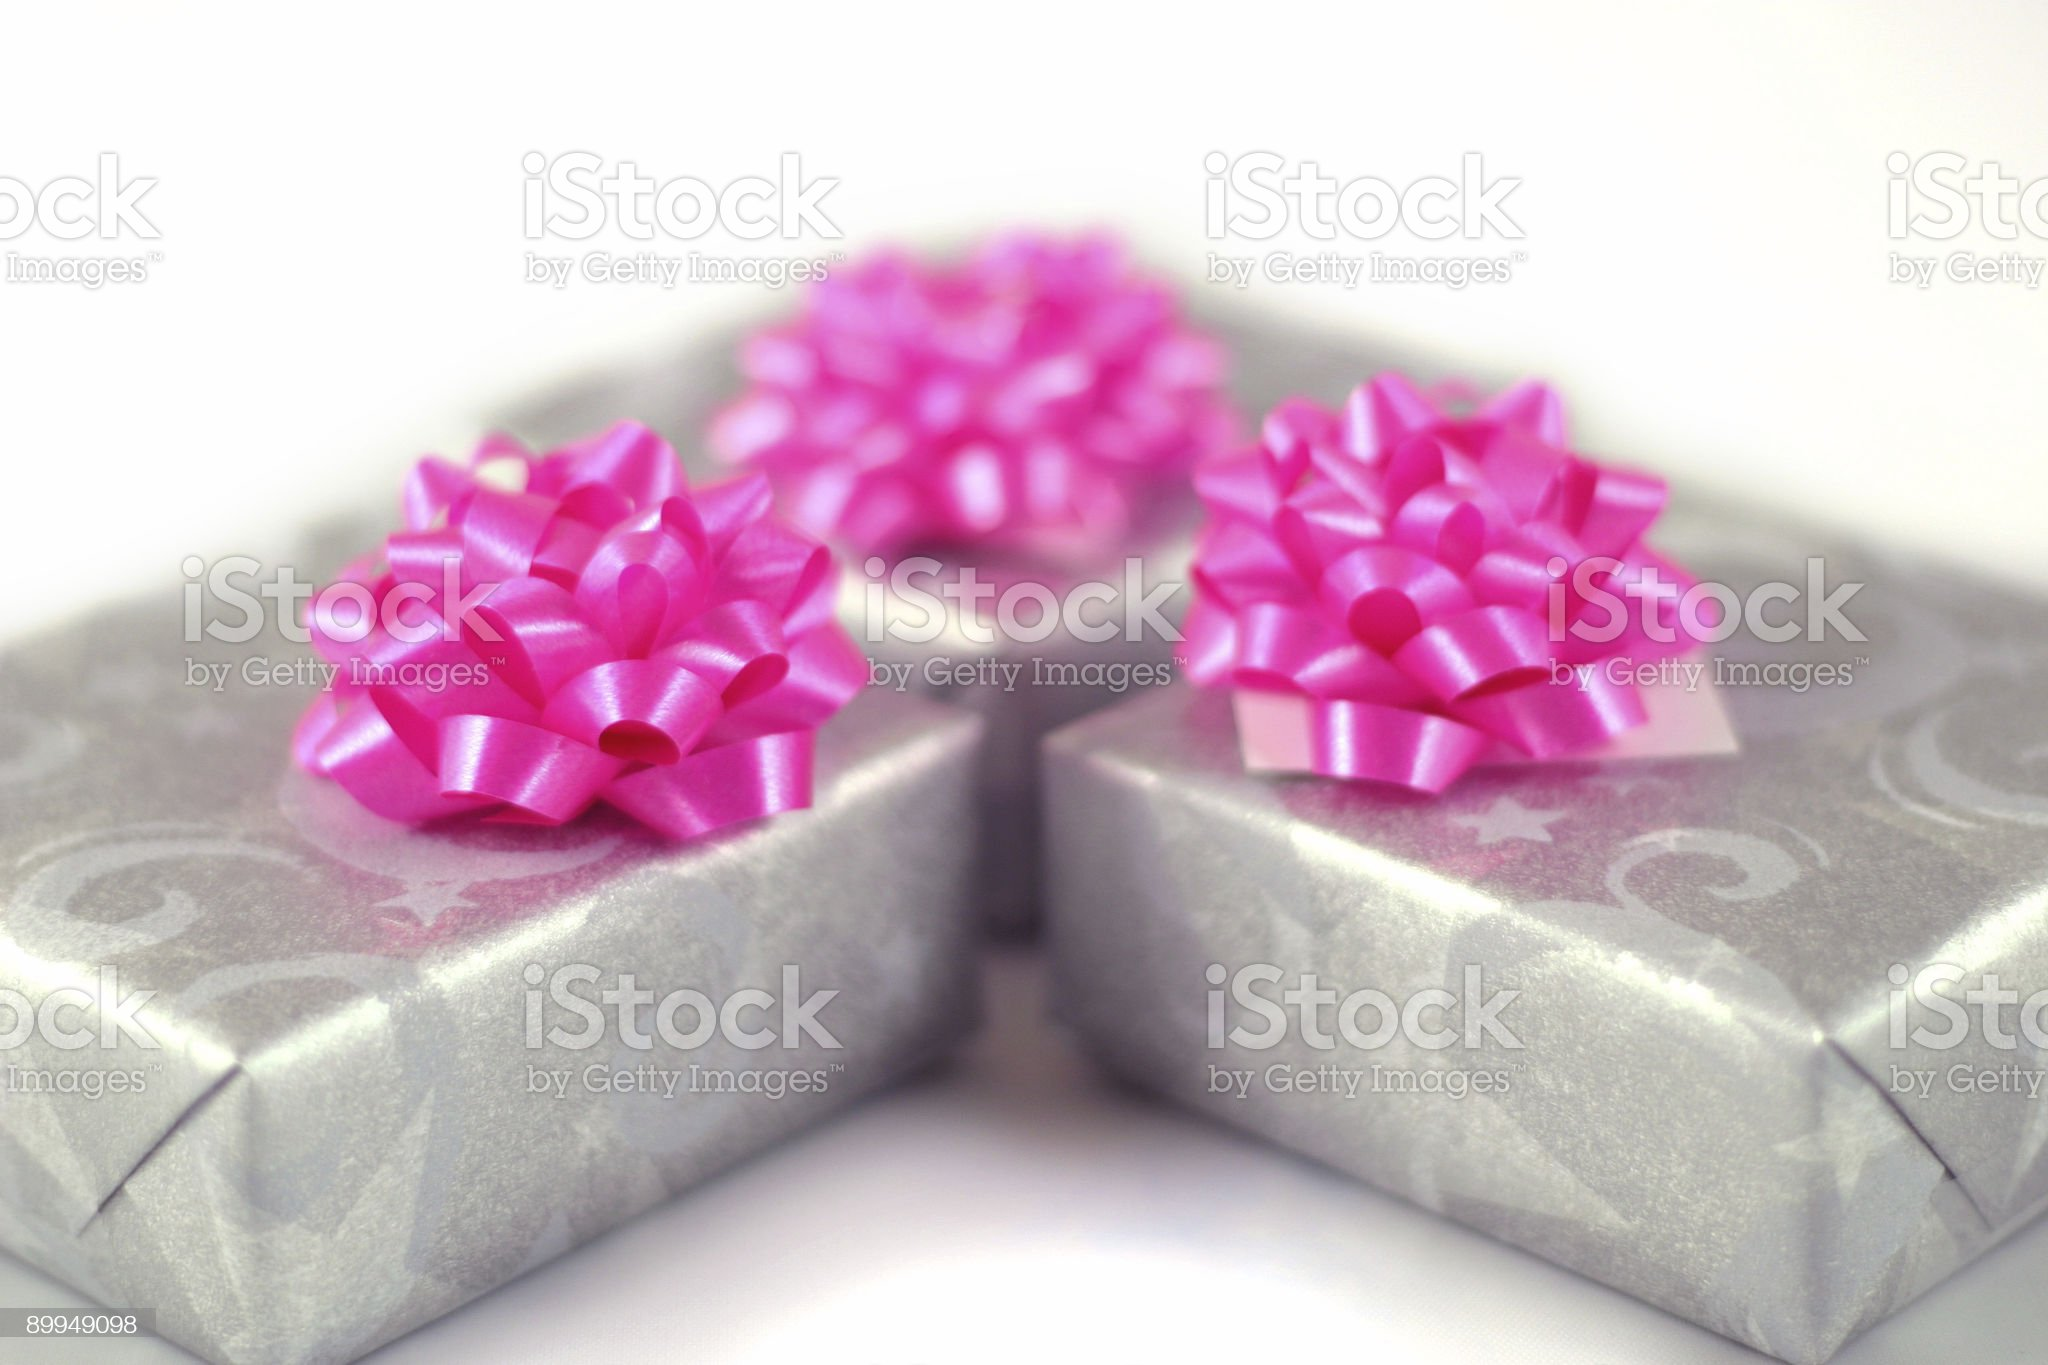 Set of 3 gift wrapped presents royalty-free stock photo